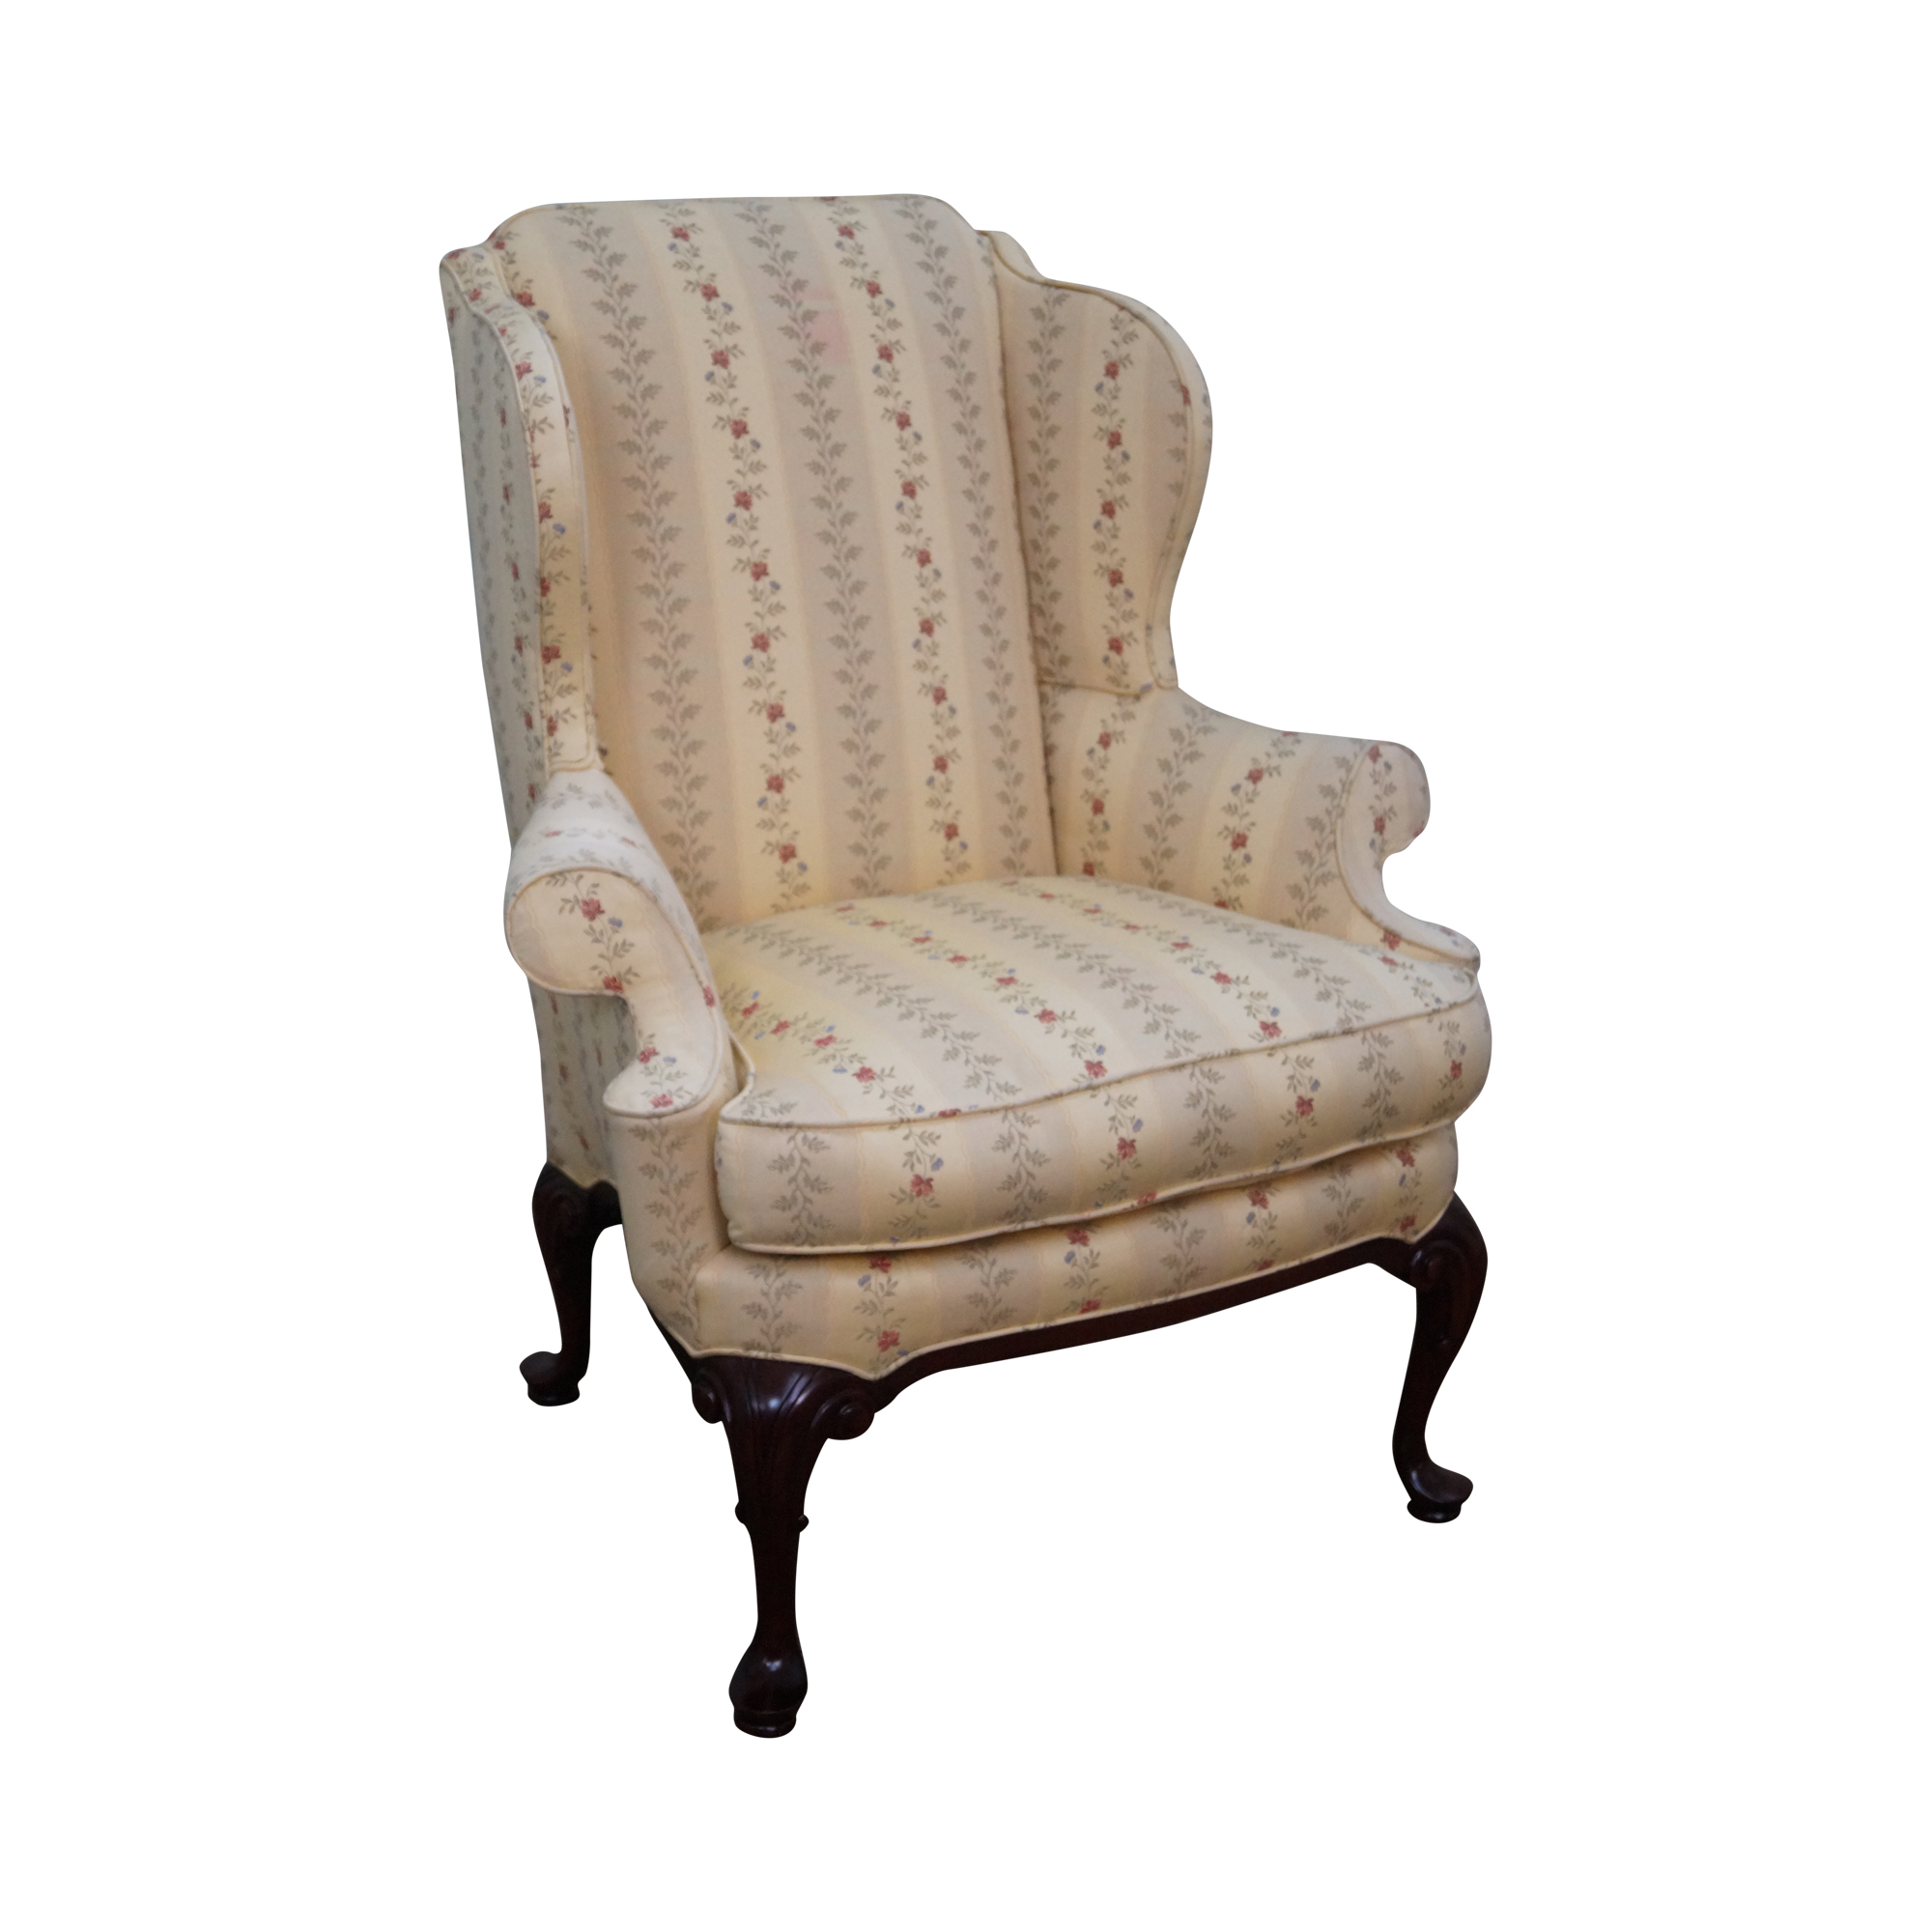 Queen Anne Style 18th Century Wing Chair